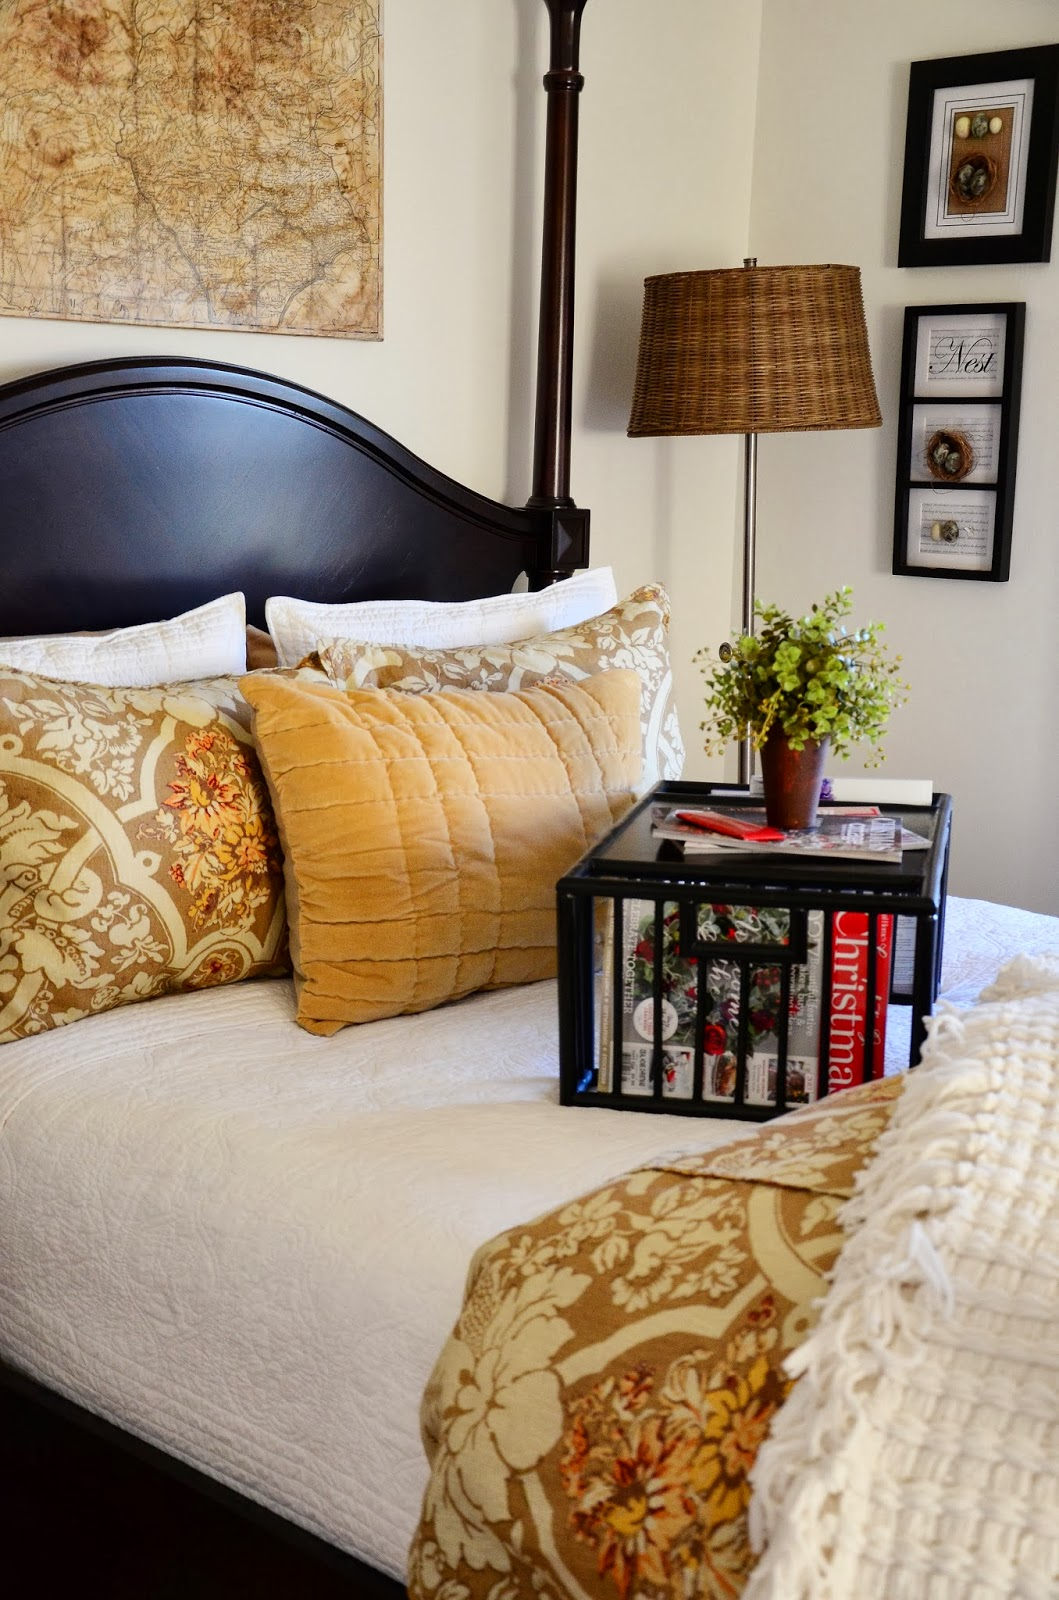 THE MAKING OF A COZY GUEST BED - StoneGable